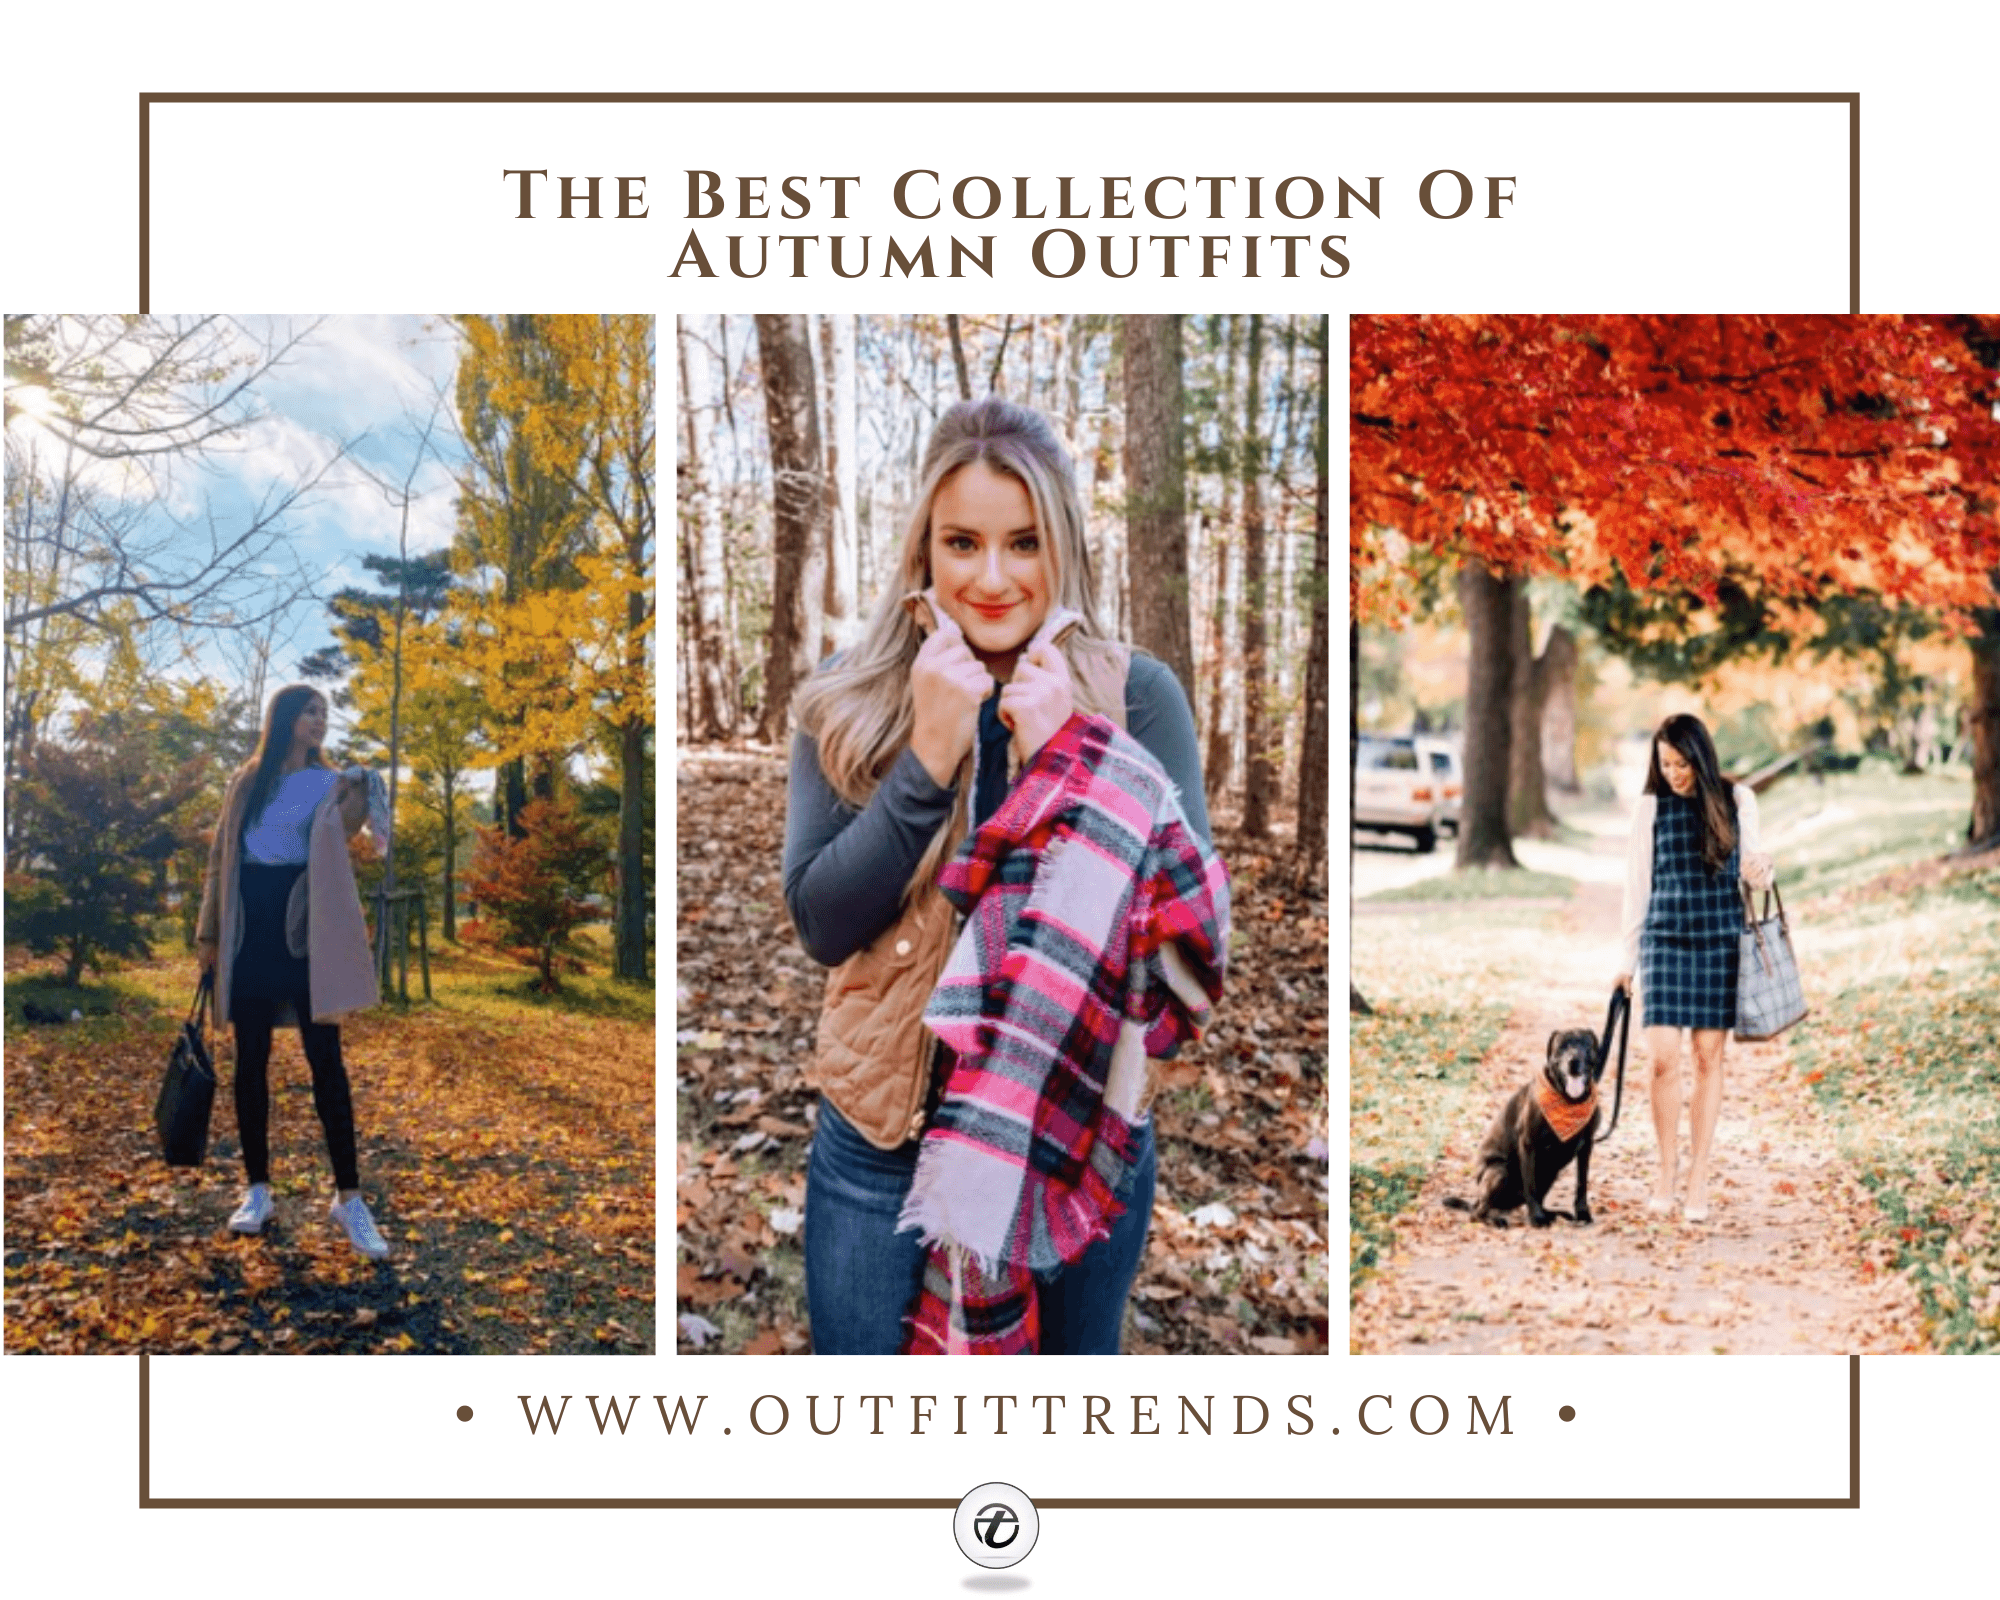 Autumn Outfits for Women- 50 Ideas On How To Dress In Autumn